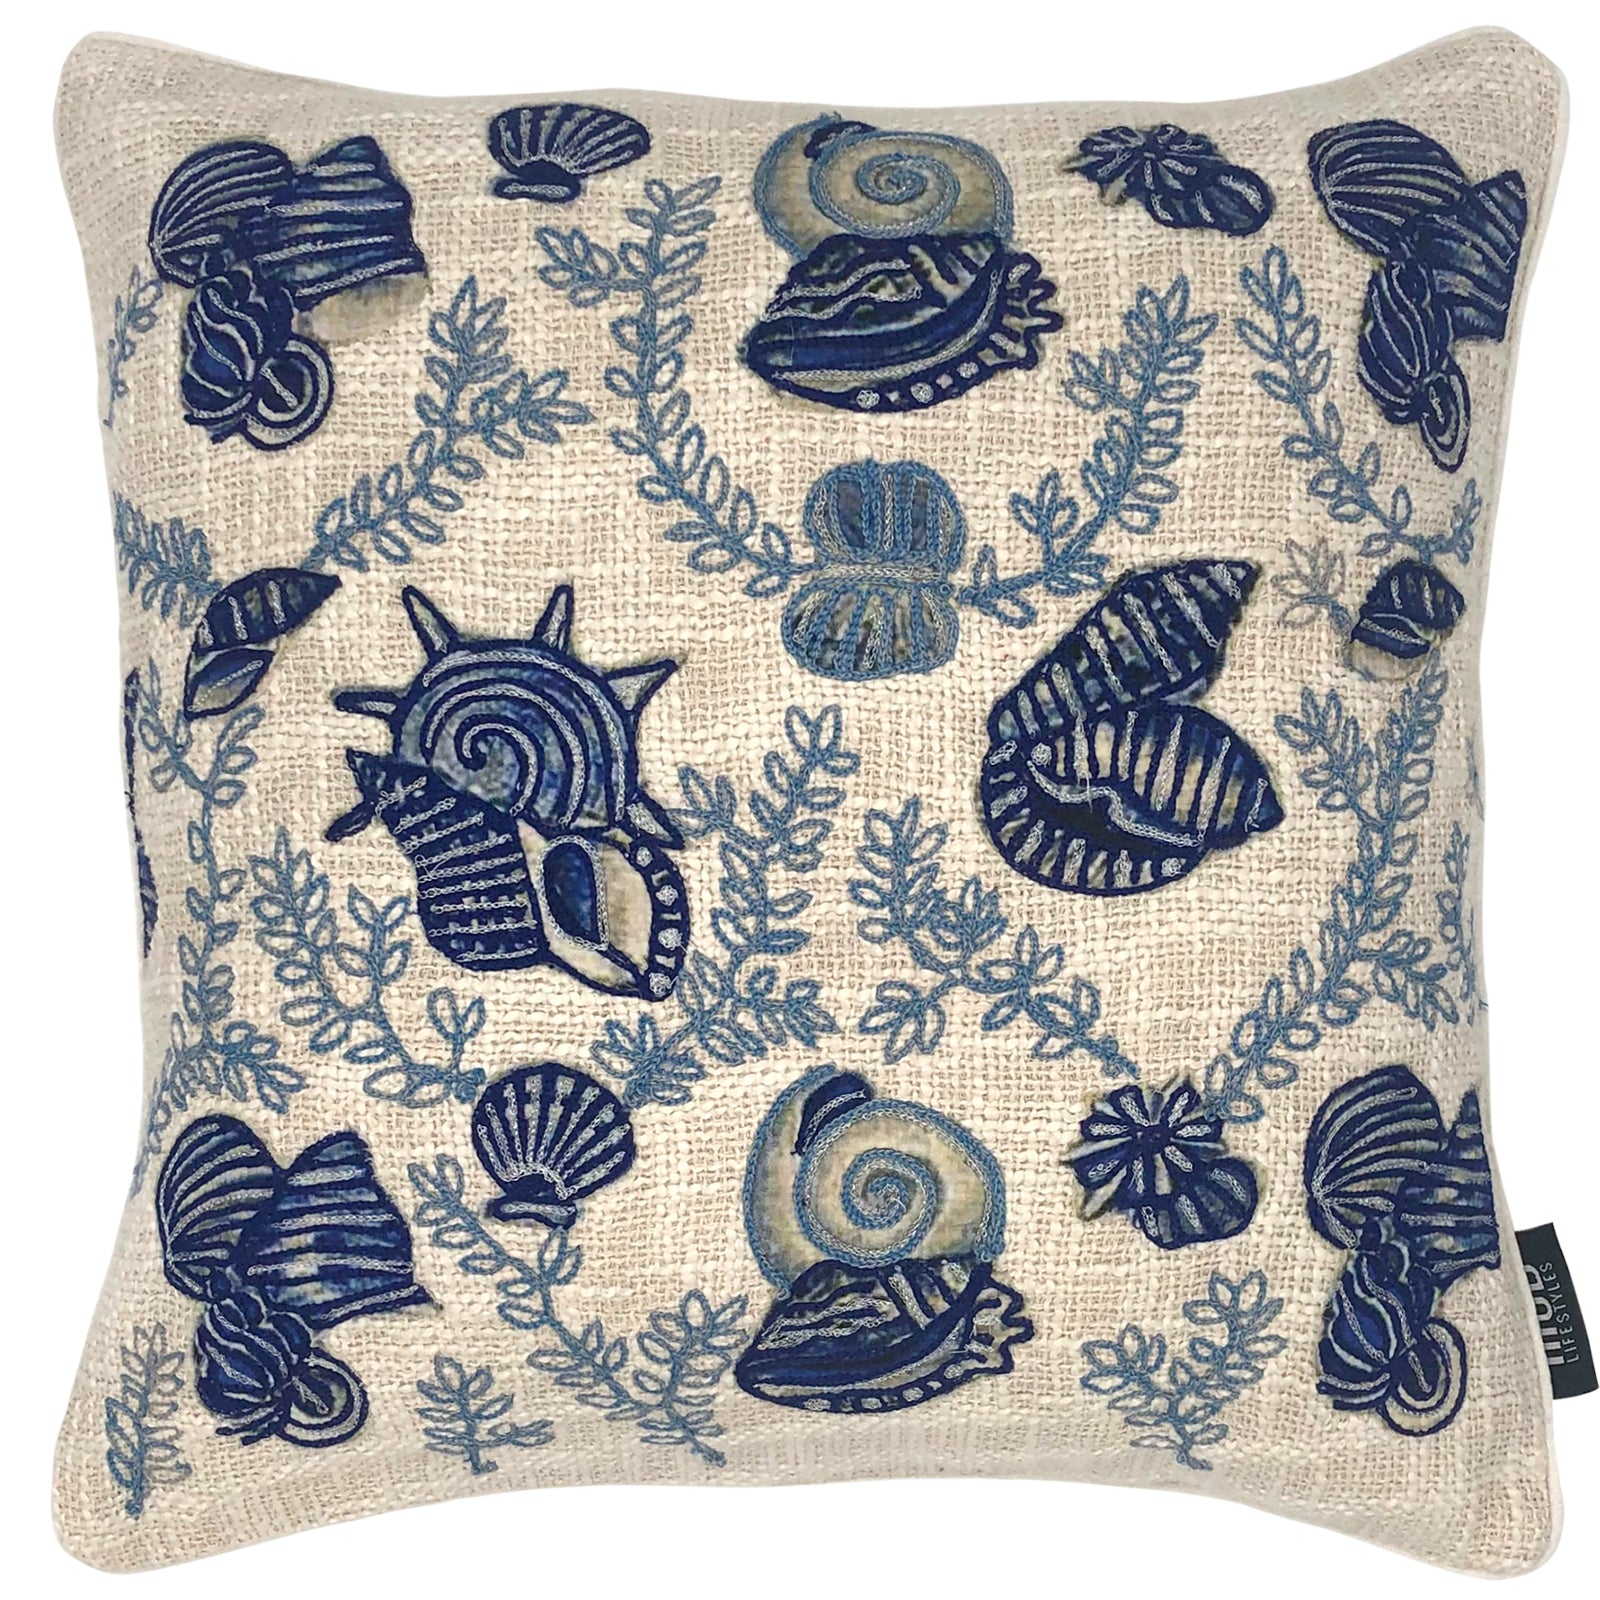 "Blue Natural Seashell Embroidery Decorative Pillow, 20"" X 20"" Mod Lifestyles"